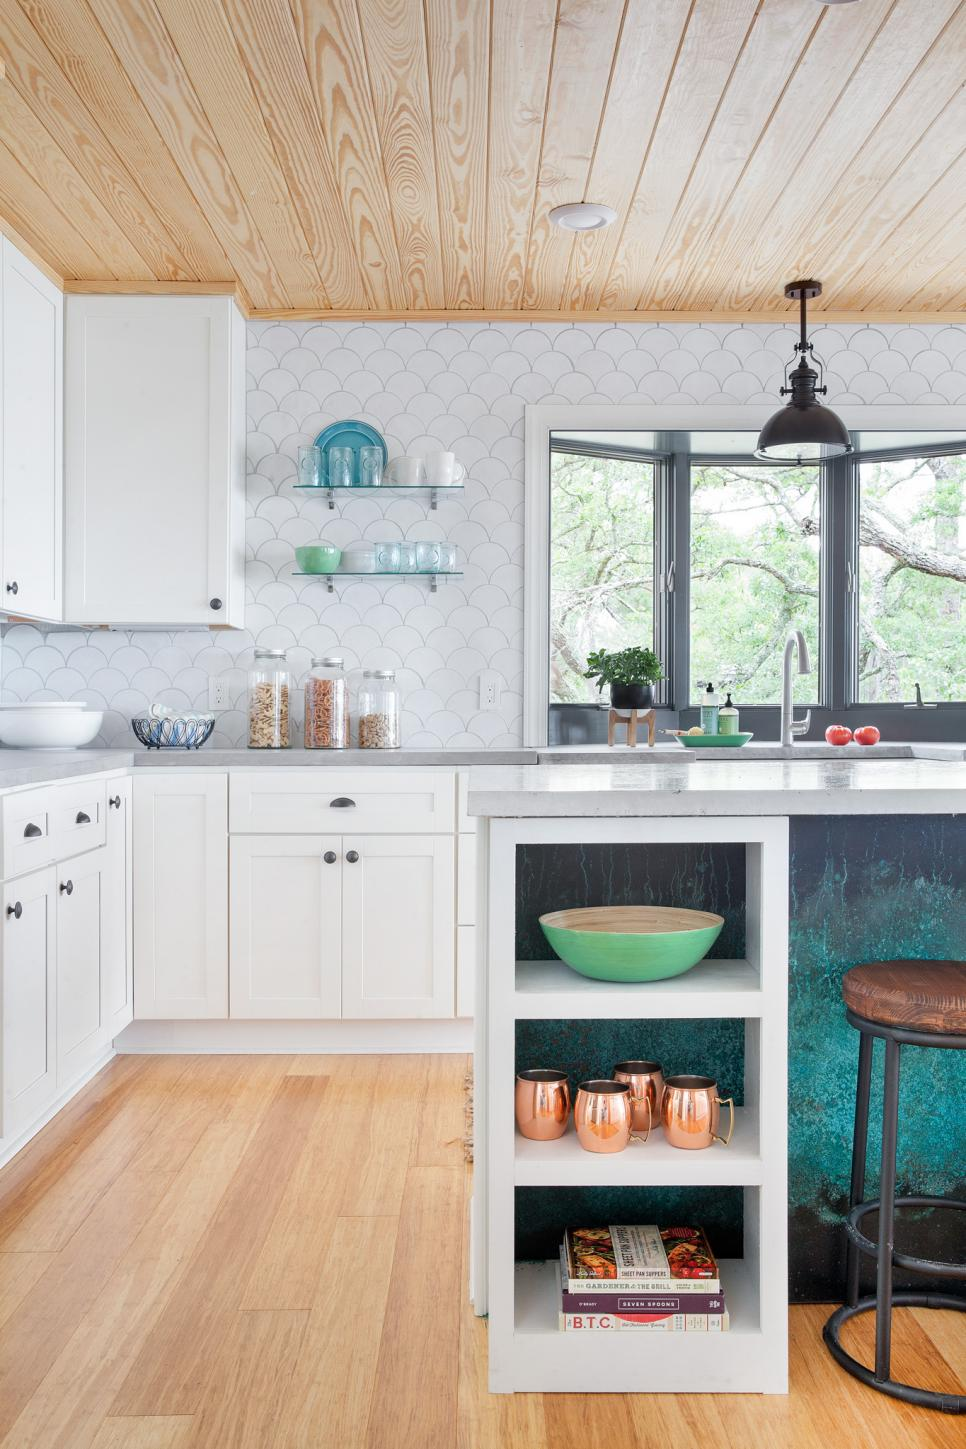 DIYBlogCabinKitchen092016 Inside the DIY Network's Blog Cabin Kitchen! All Kitchens Tile Inspiration   bc2016_kitchen-pantry_017_transition-to-pantry_h.jpg.rend_.hgtvcom.966.644 Inside the DIY Network's Blog Cabin Kitchen! All Kitchens Tile Inspiration   bc2016_kitchen-pantry_015_cabinet-mid-range_v.jpg.rend_.hgtvcom.966.1449 Inside the DIY Network's Blog Cabin Kitchen! All Kitchens Tile Inspiration   bc2016_kitchen-pantry_013_mid-range_v.jpg.rend_.hgtvcom.966.1449 Inside the DIY Network's Blog Cabin Kitchen! All Kitchens Tile Inspiration   bc2016_kitchen-pantry_010_mid-range_v.jpg.rend_.hgtvcom.966.1449 Inside the DIY Network's Blog Cabin Kitchen! All Kitchens Tile Inspiration